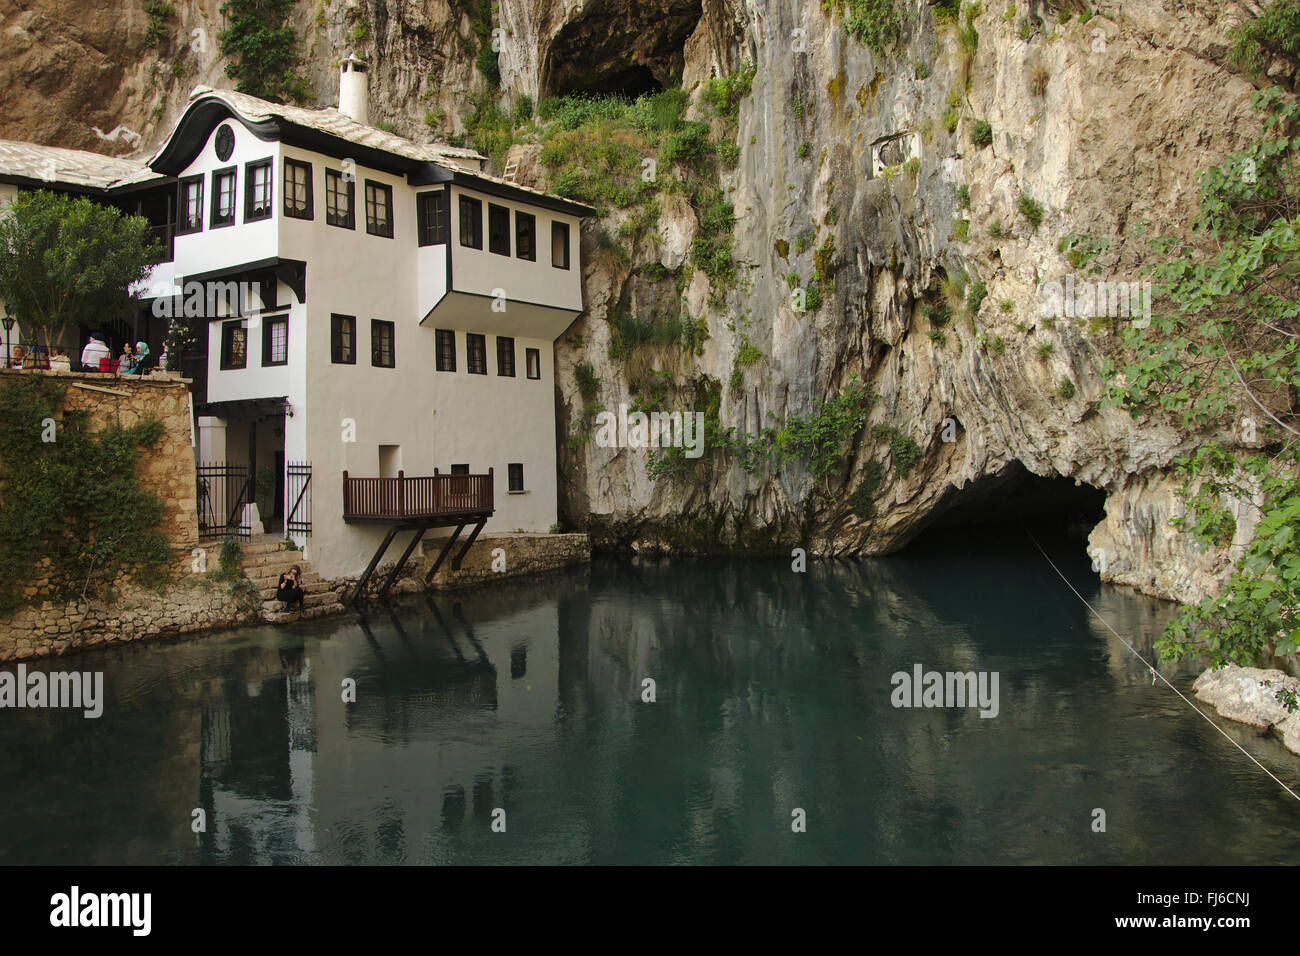 Blagaj (near Mostar), Tekija (dervish monastery) and river flowing out of the mouth of a cave, Bosnia and Herzegovina - Stock Image